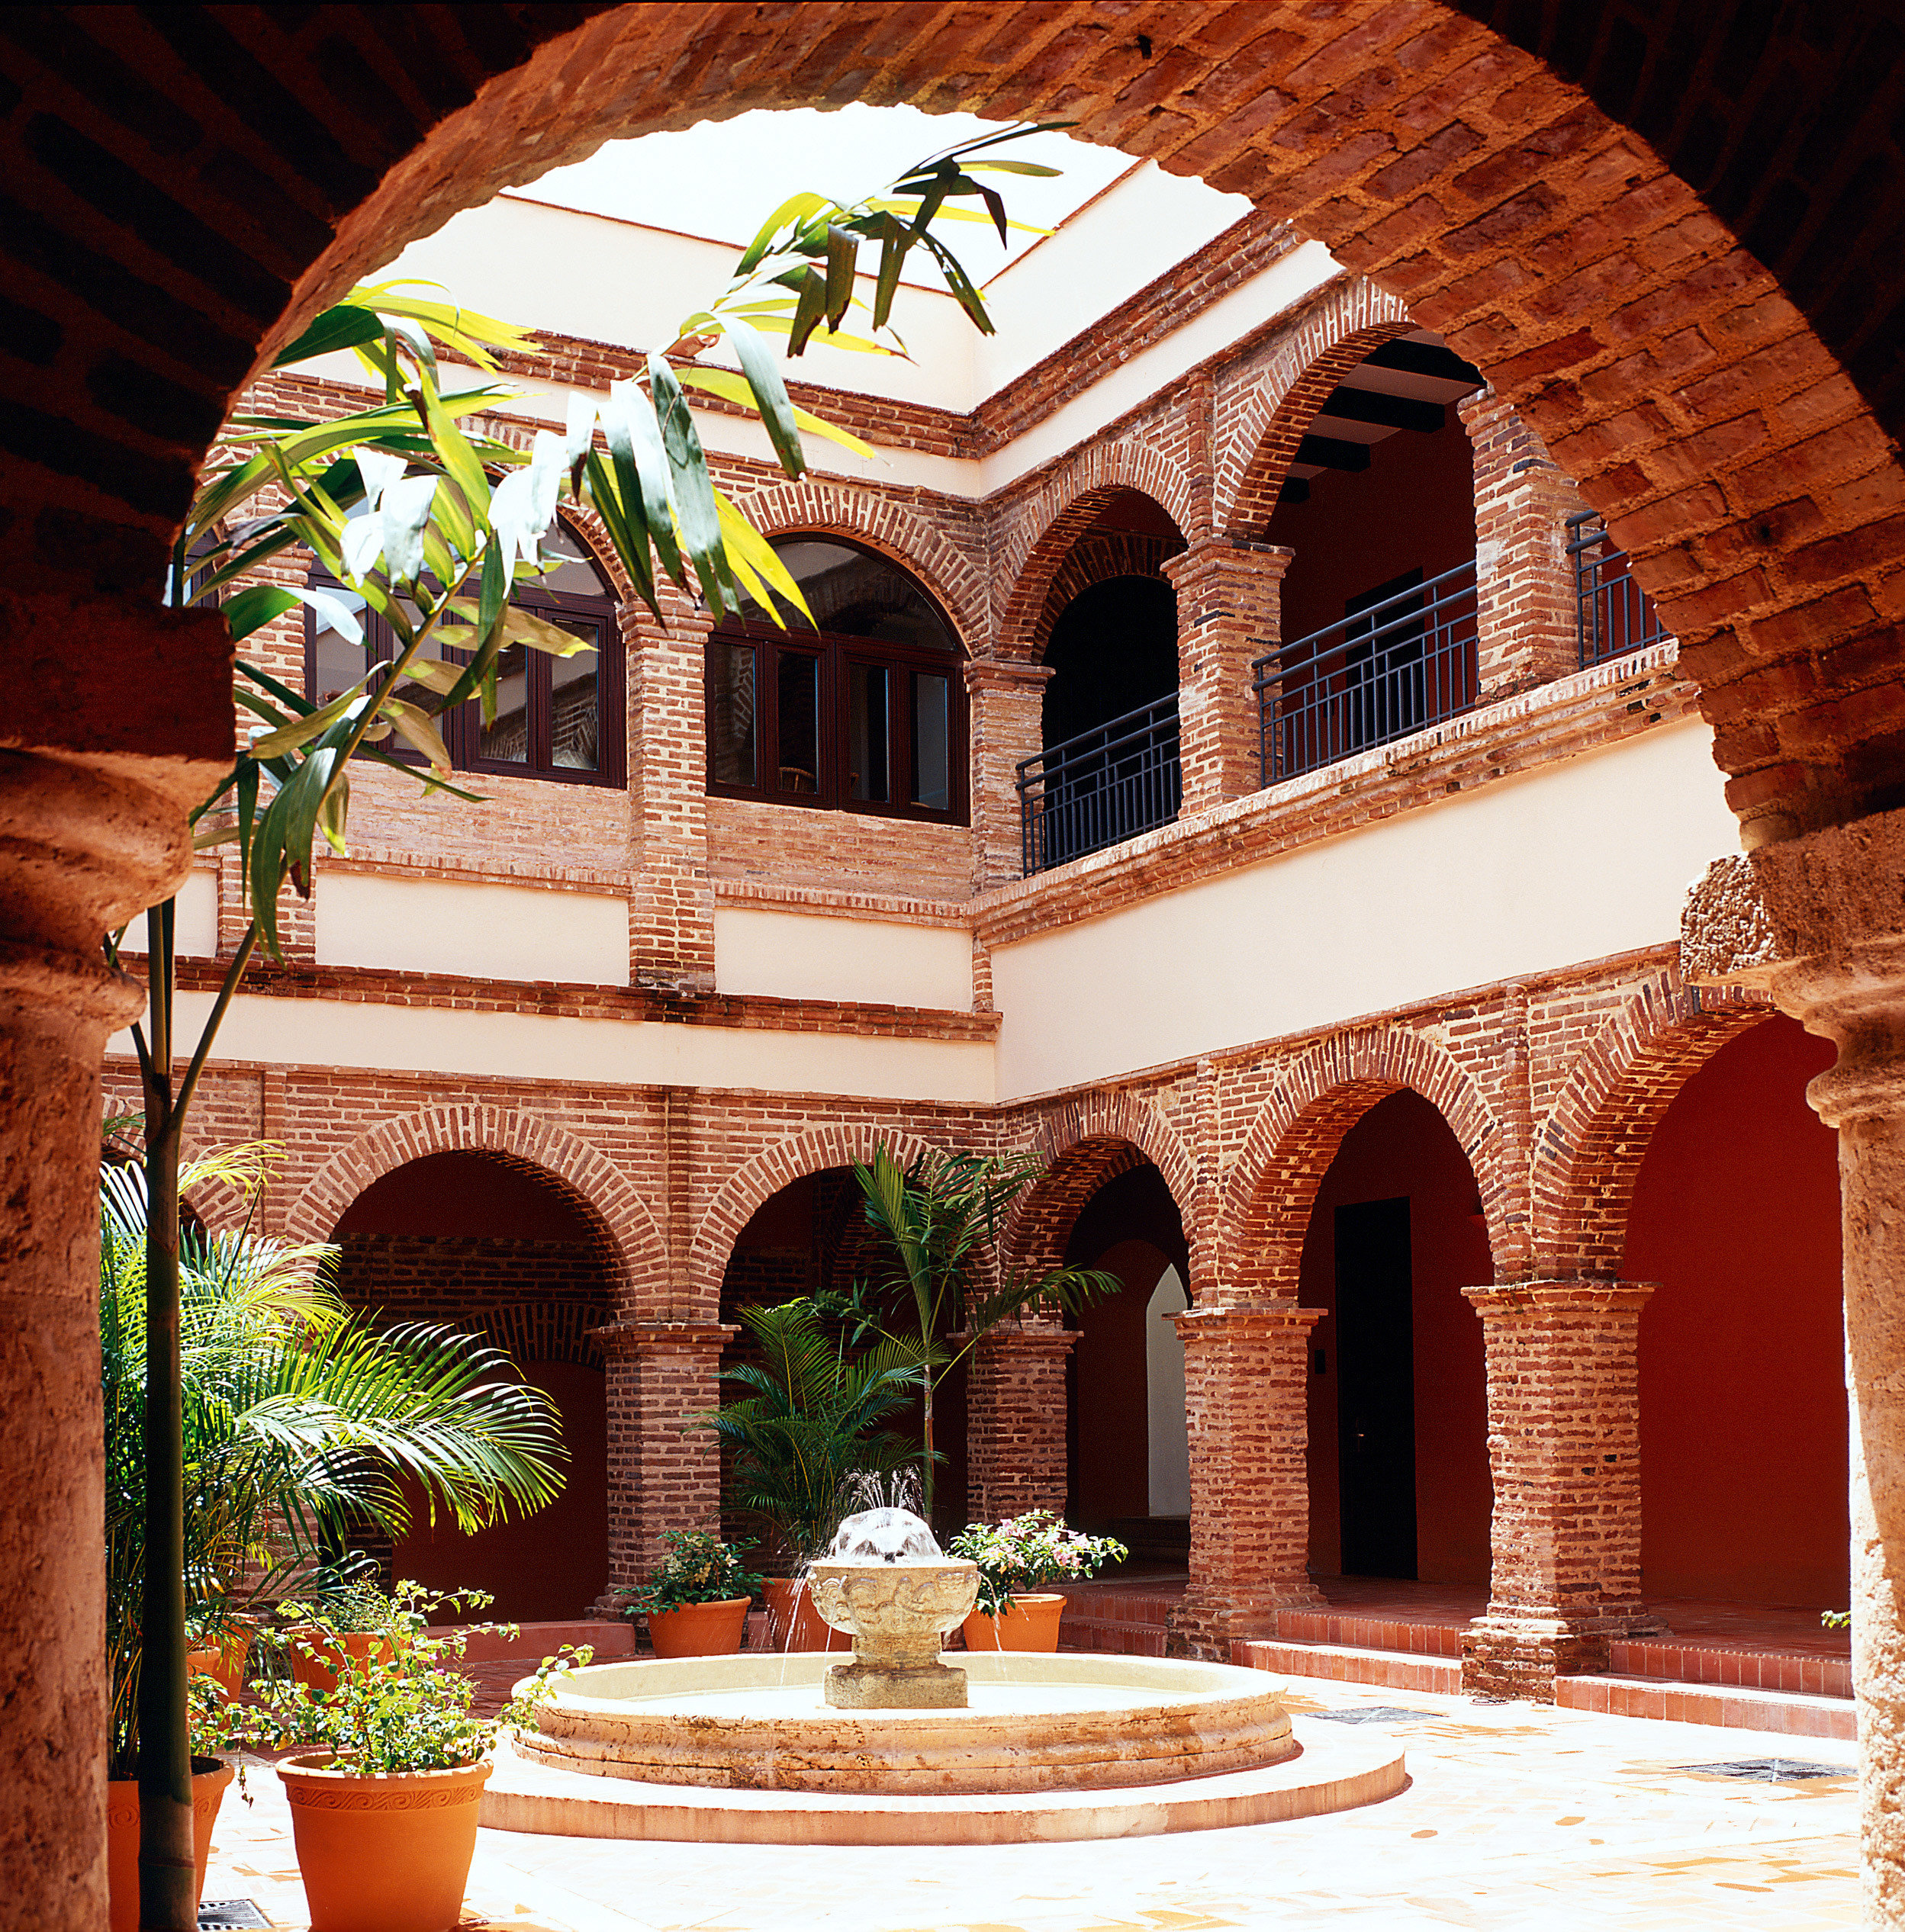 Classic Courtyard Grounds building arch Architecture hacienda stone brick home mansion palace ancient history court colonnade